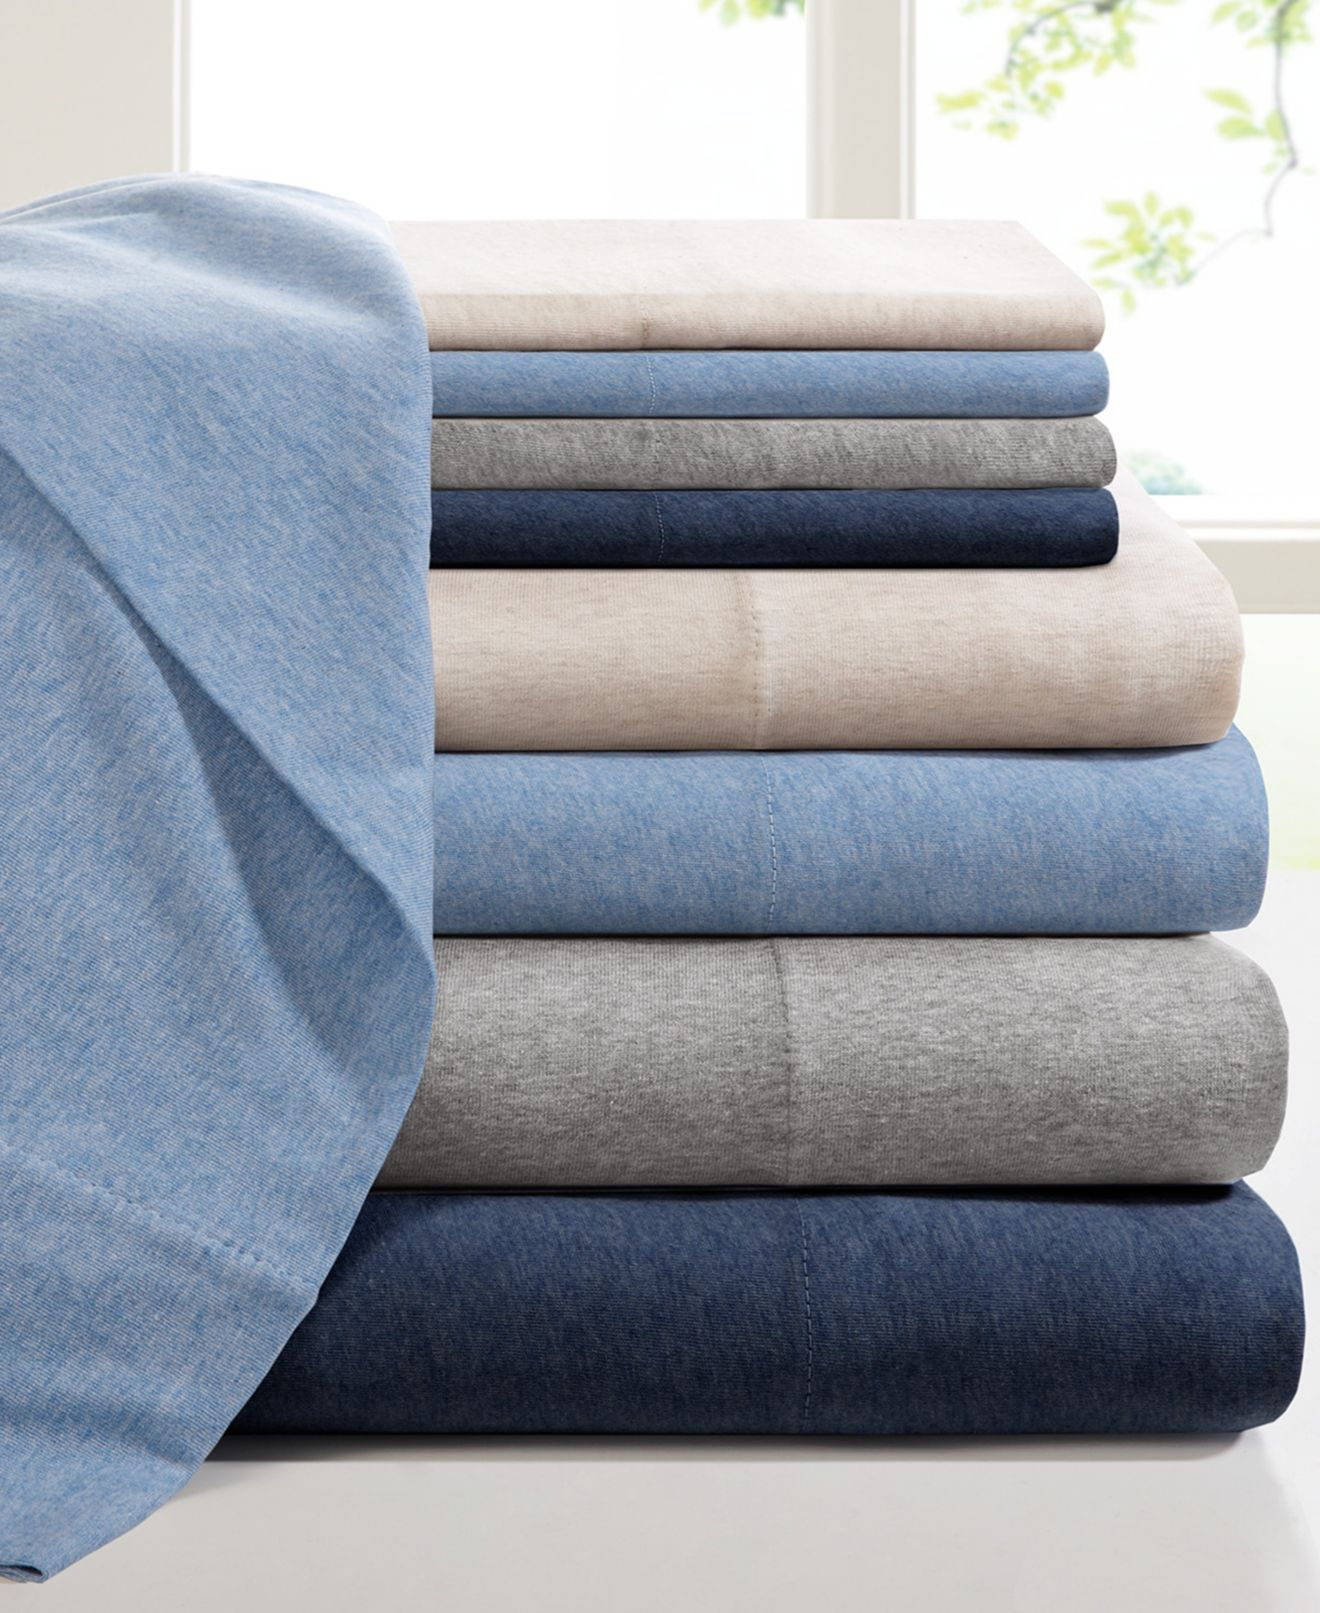 Heathered Cotton Jersey Solid Sheet Sets - Sheets - Bed & Bath - Macy's